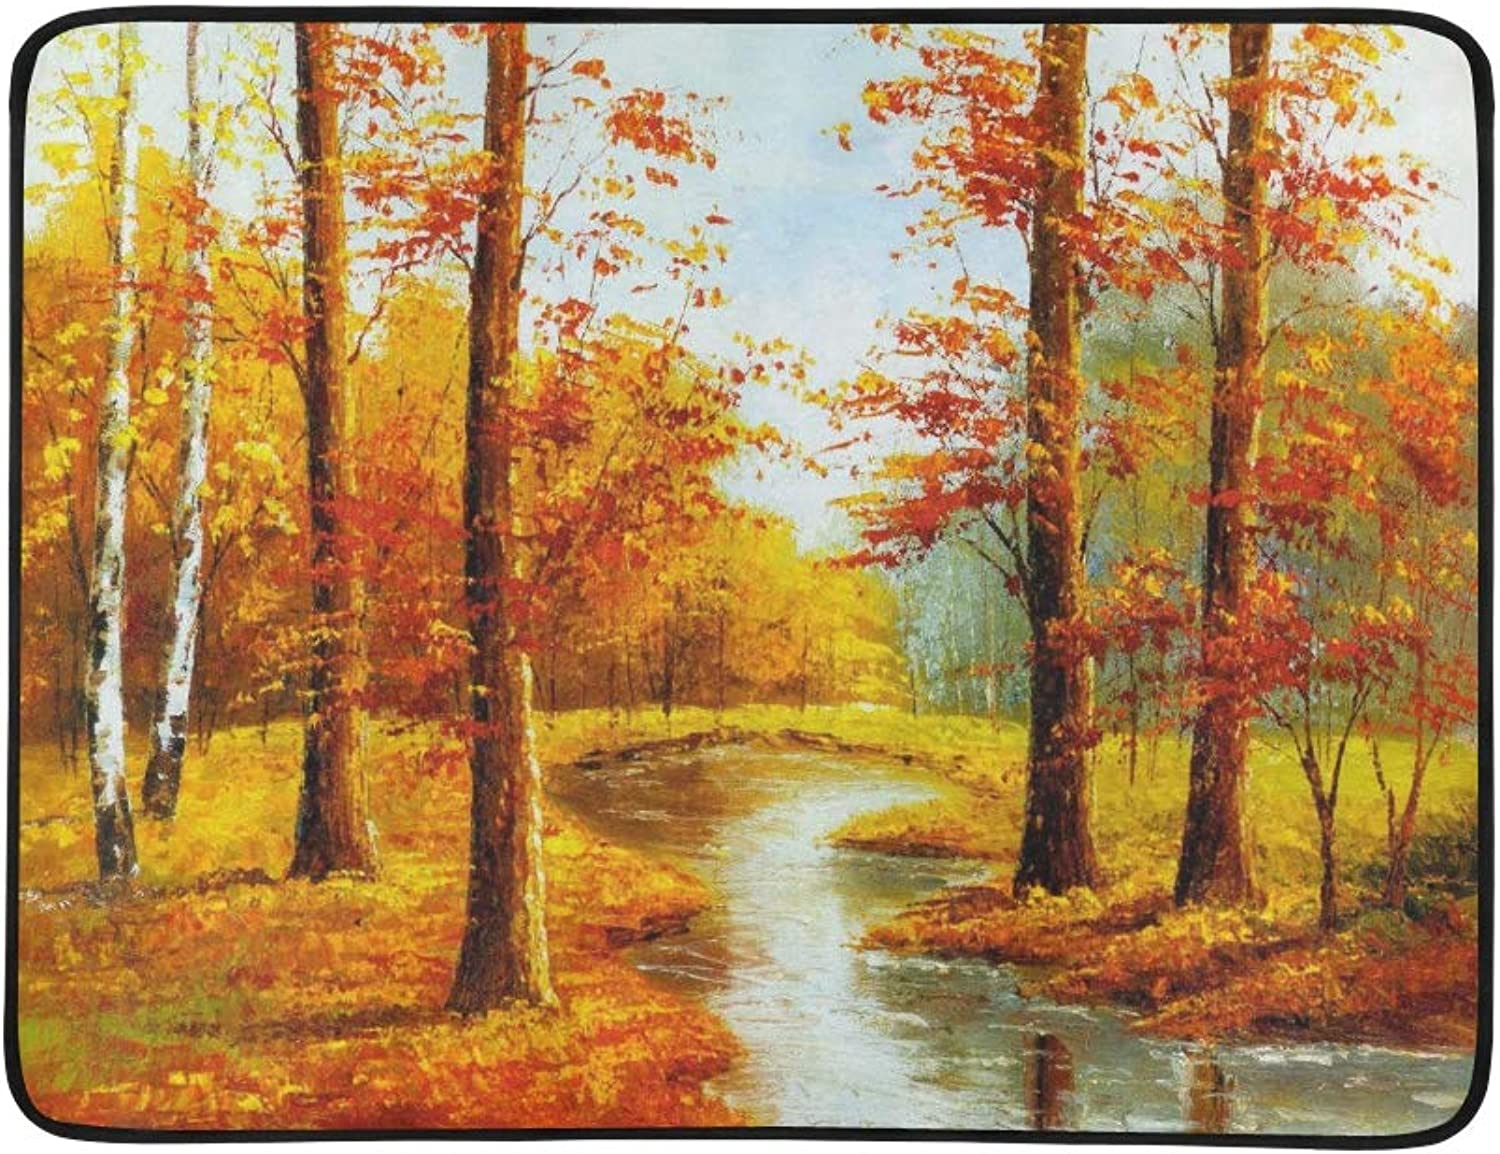 Autumn Landscape Canvas Oil Paintings for Hotel De Pattern Portable and Foldable Blanket Mat 60x78 Inch Handy Mat for Camping Picnic Beach Indoor Outdoor Travel